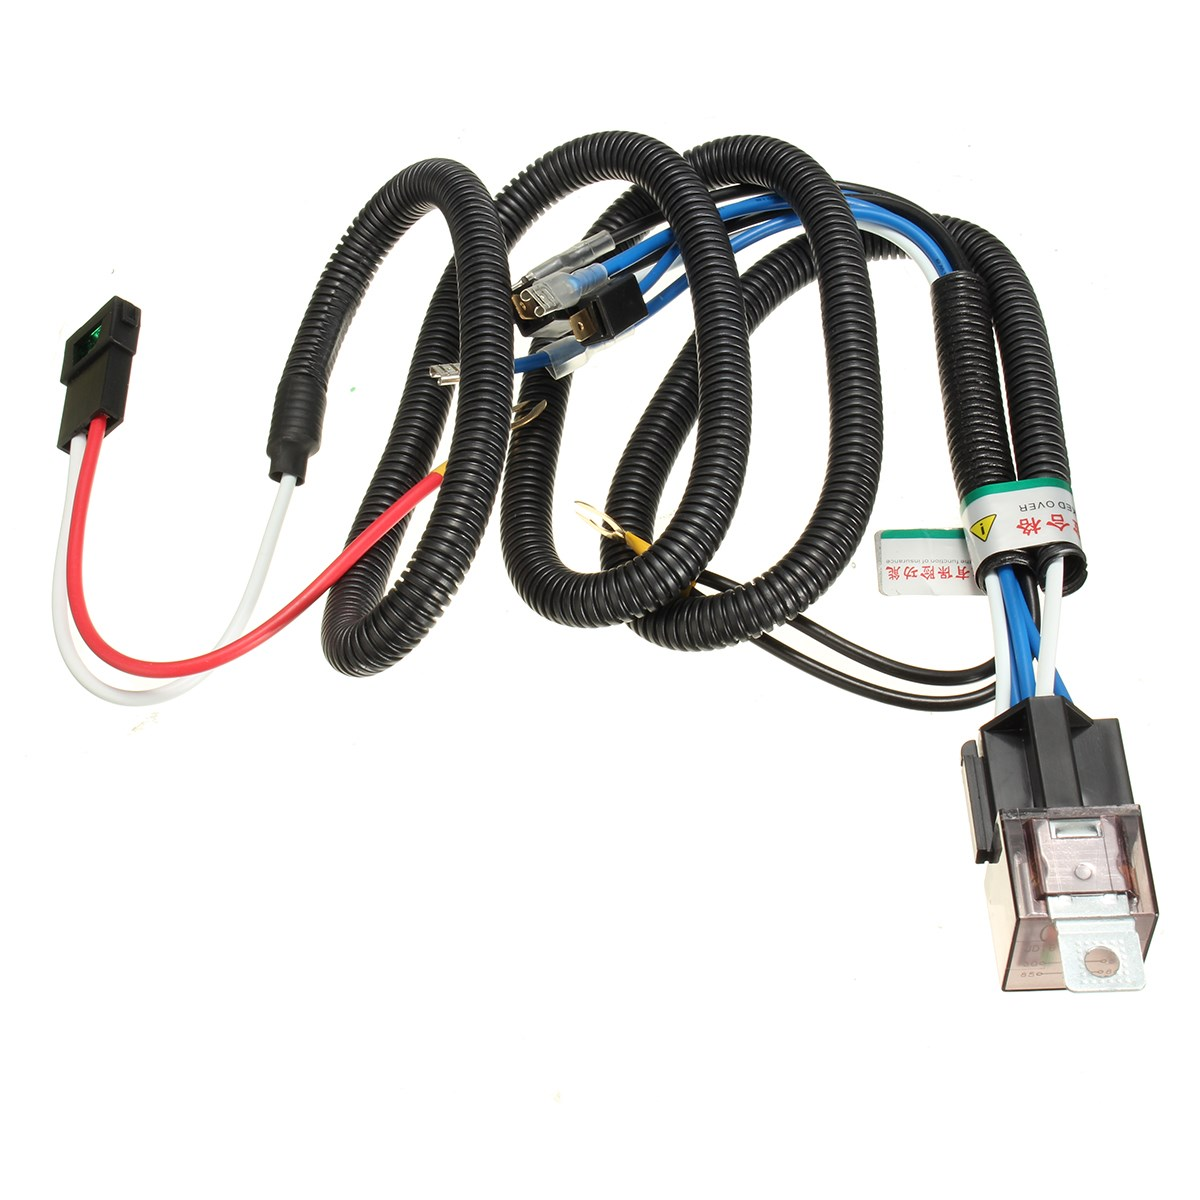 12v Horn Wiring Harness Relay Kit For Car 41 Diagram Images Motorcycle Truck Grille Mount Blast Tone Horns